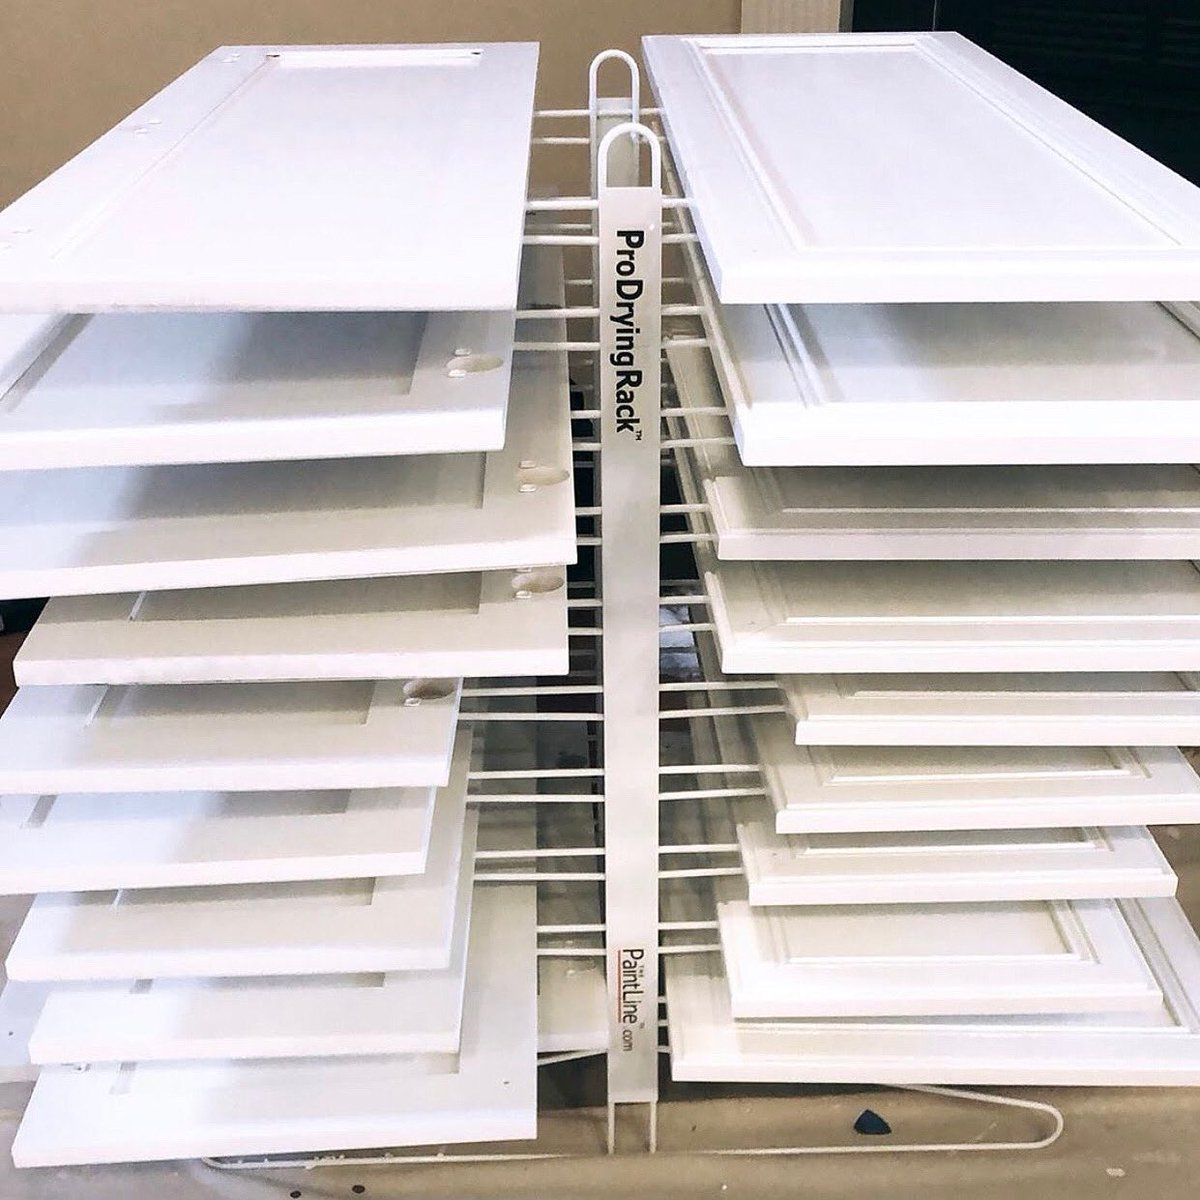 Is your workshop too crowded with freshly painted #cabinet doors and pieces laying around? Solve that issue with a ProDryingRack TT (PDRTT)! This table-top drying rack can hold up to 20 doors, making it a perfect size for smaller #workshops and #garages. https://t.co/kqaWJMH7fa https://t.co/YhOg0tRff0